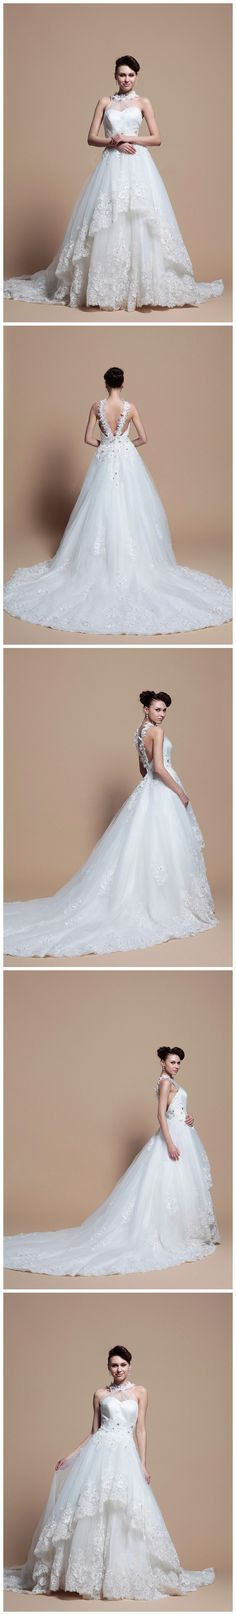 Princess Halter Neck With Two Layer Wedding Dress